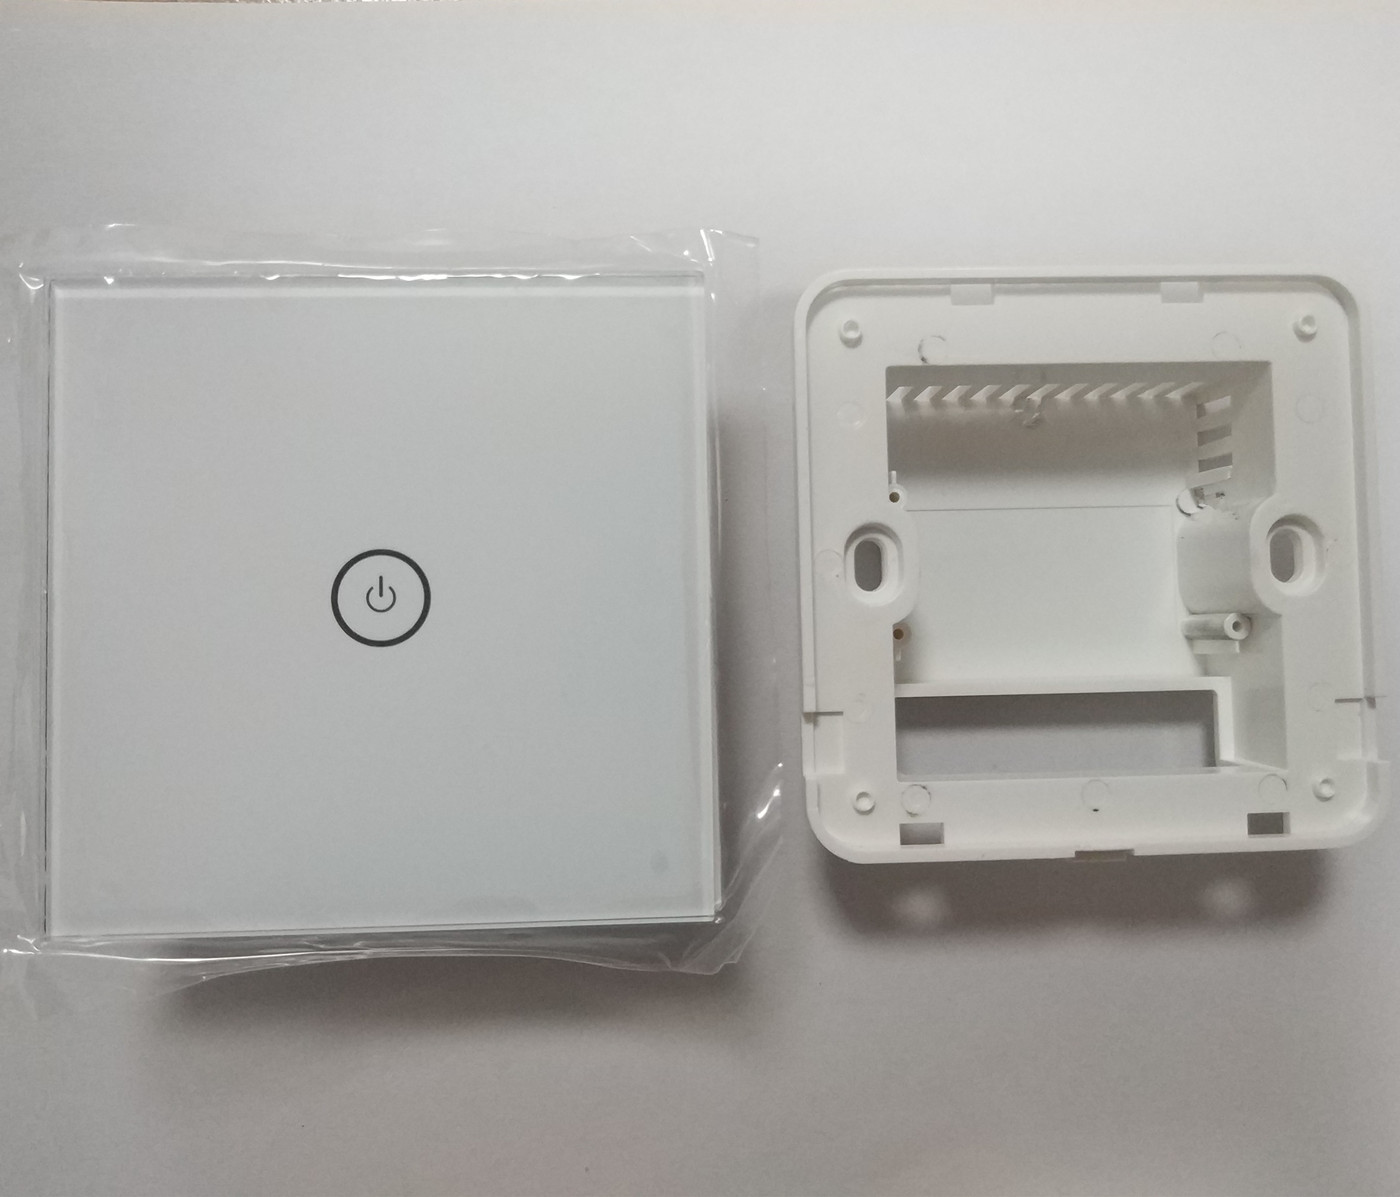 Type 86 smart home housing kit, wiring port groove, pattern and text can be customized by laser engraving